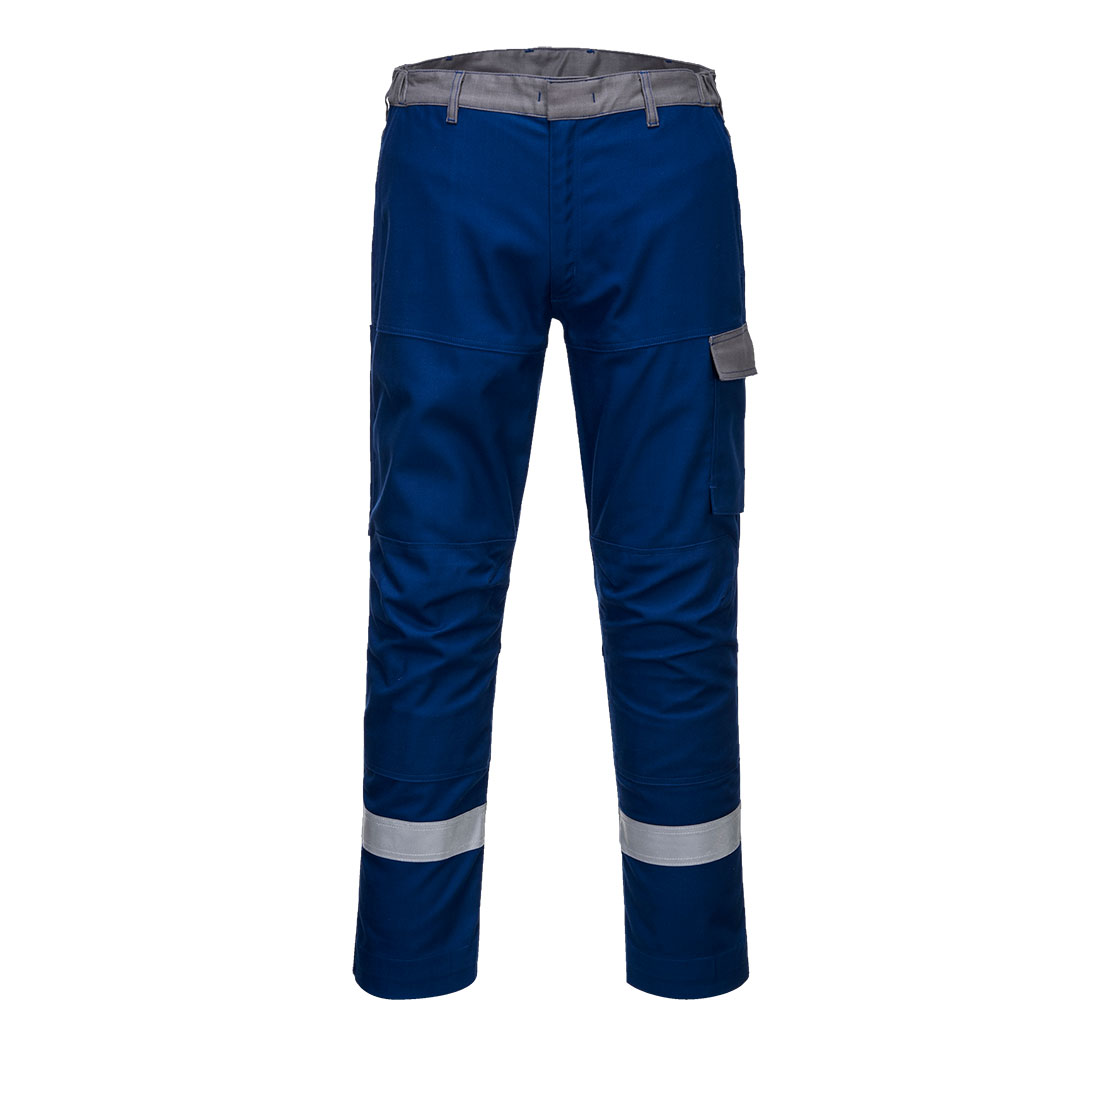 Bizflame Ultra Two Tone Trouser Royal Blue UK36 EU52  F